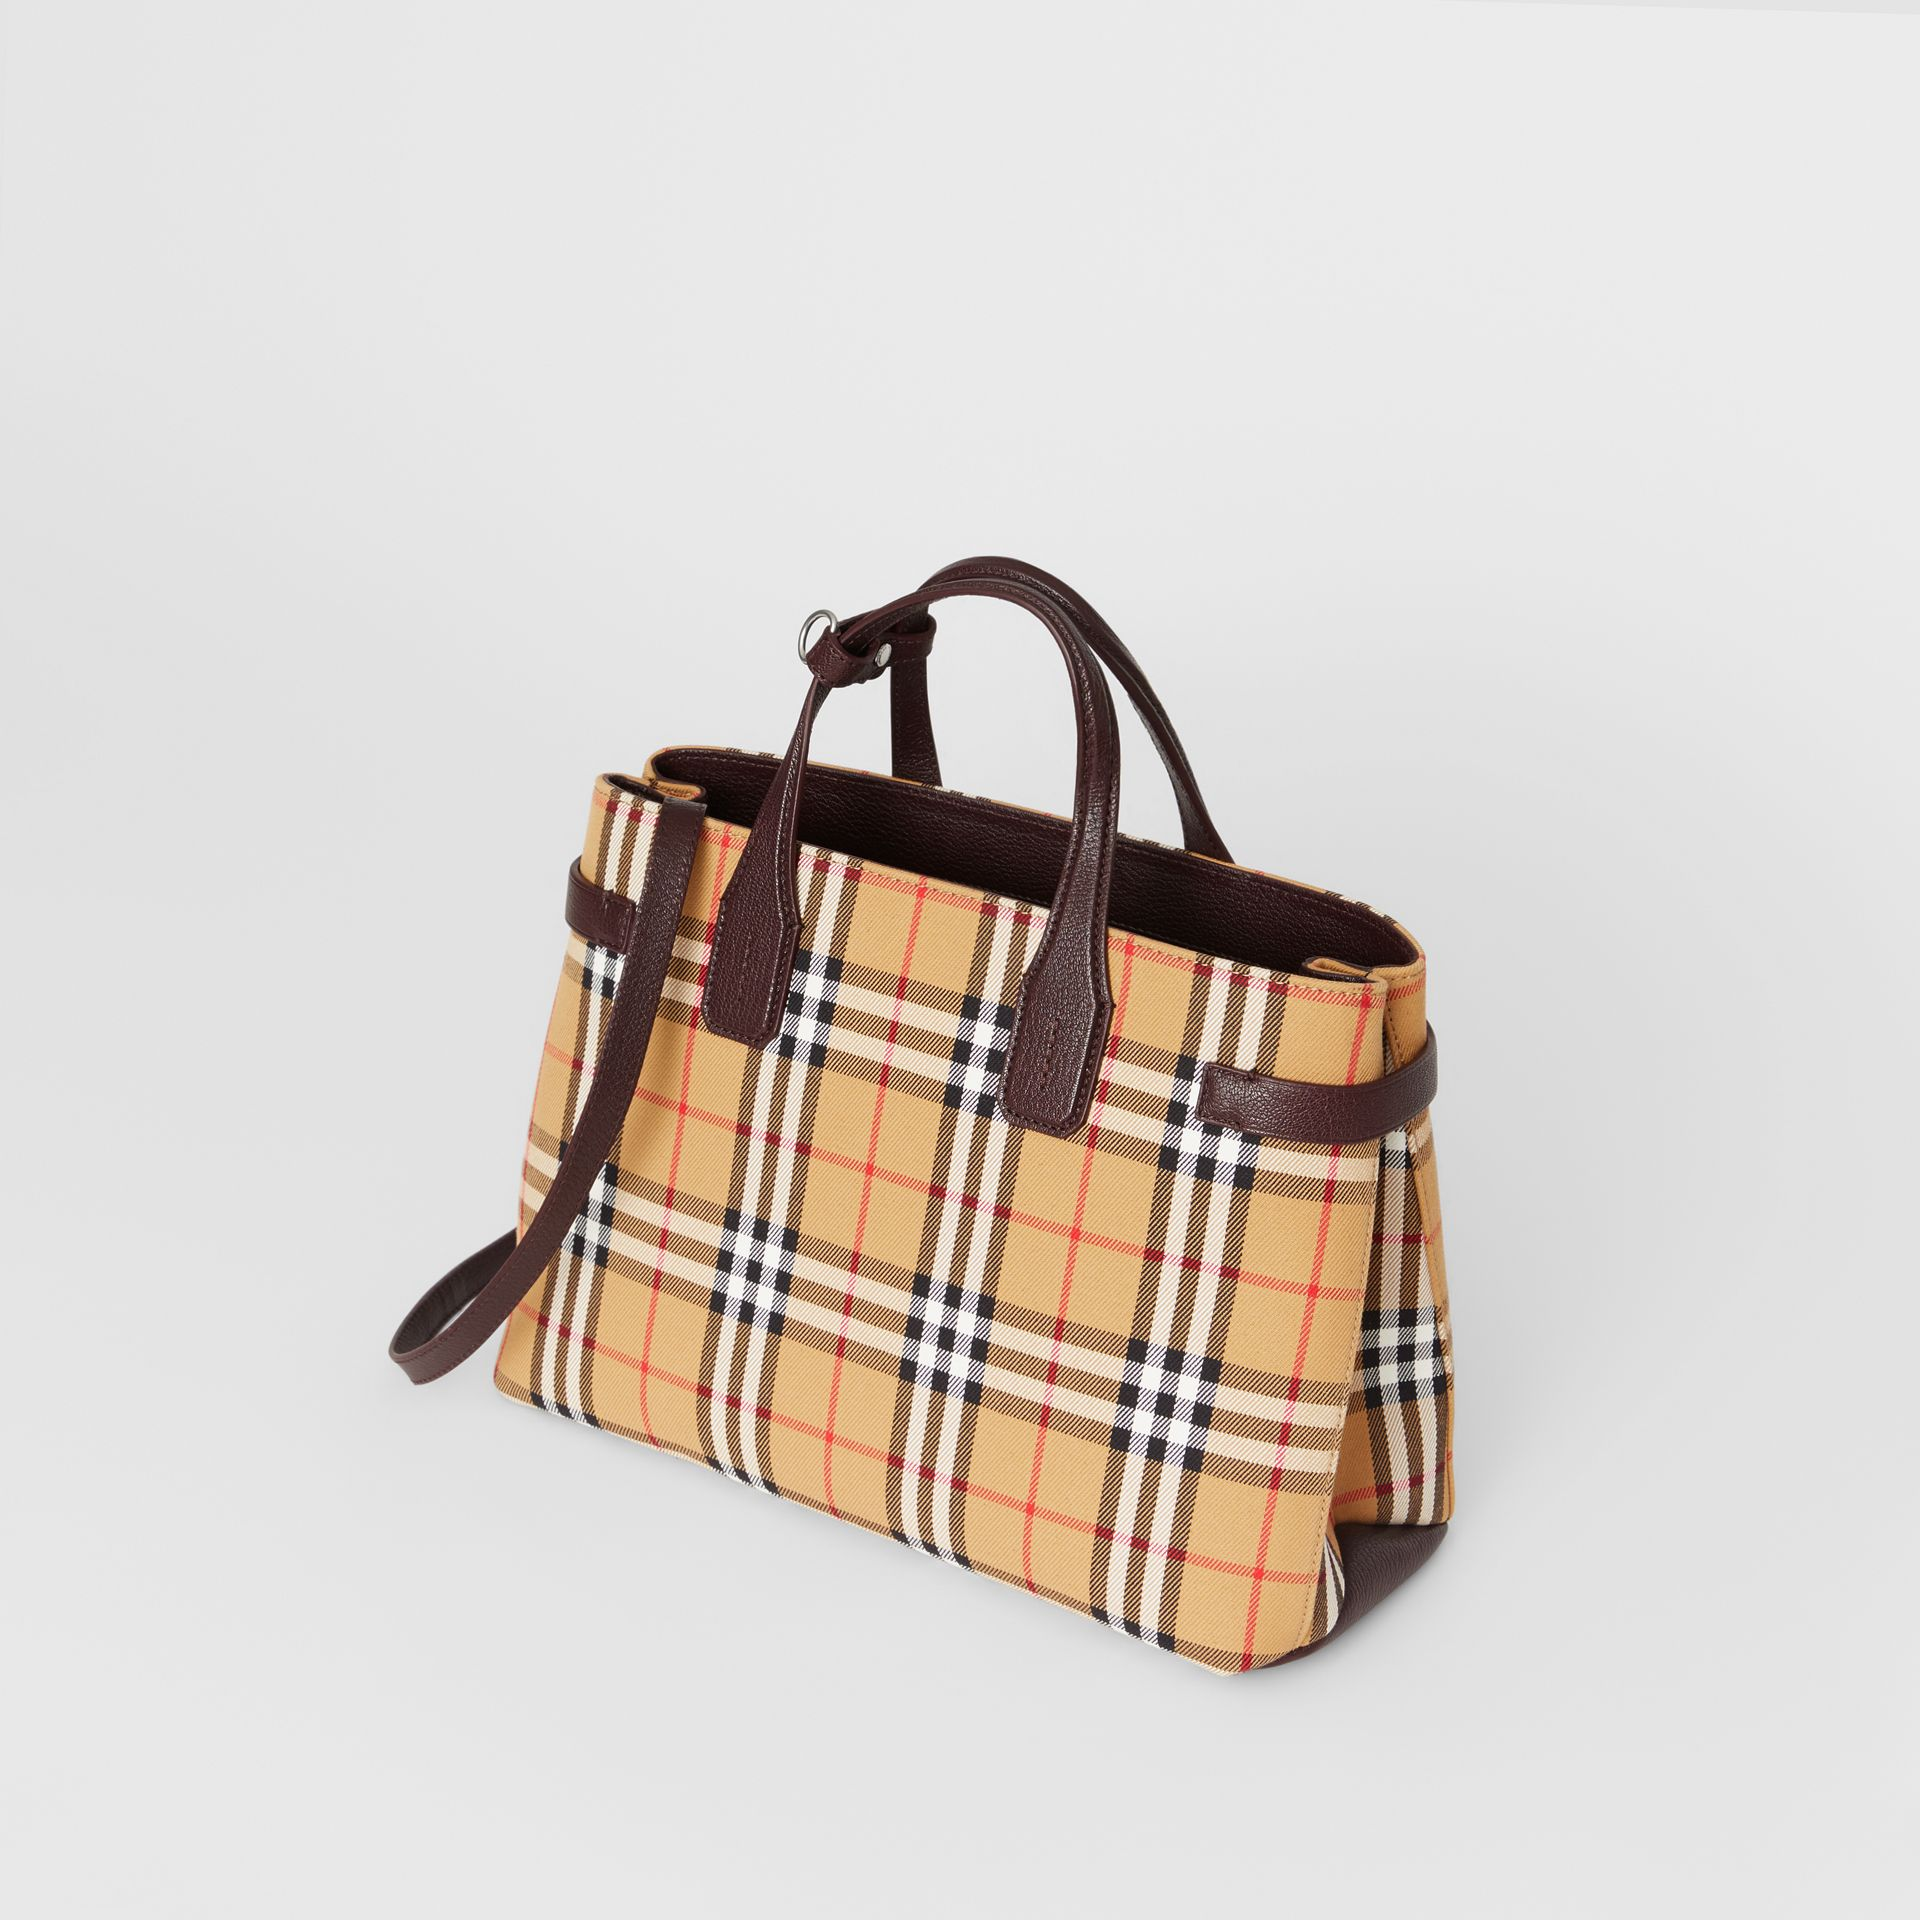 Sac The Banner moyen en cuir et Vintage check (Bordeaux Intense) - Femme | Burberry - photo de la galerie 4